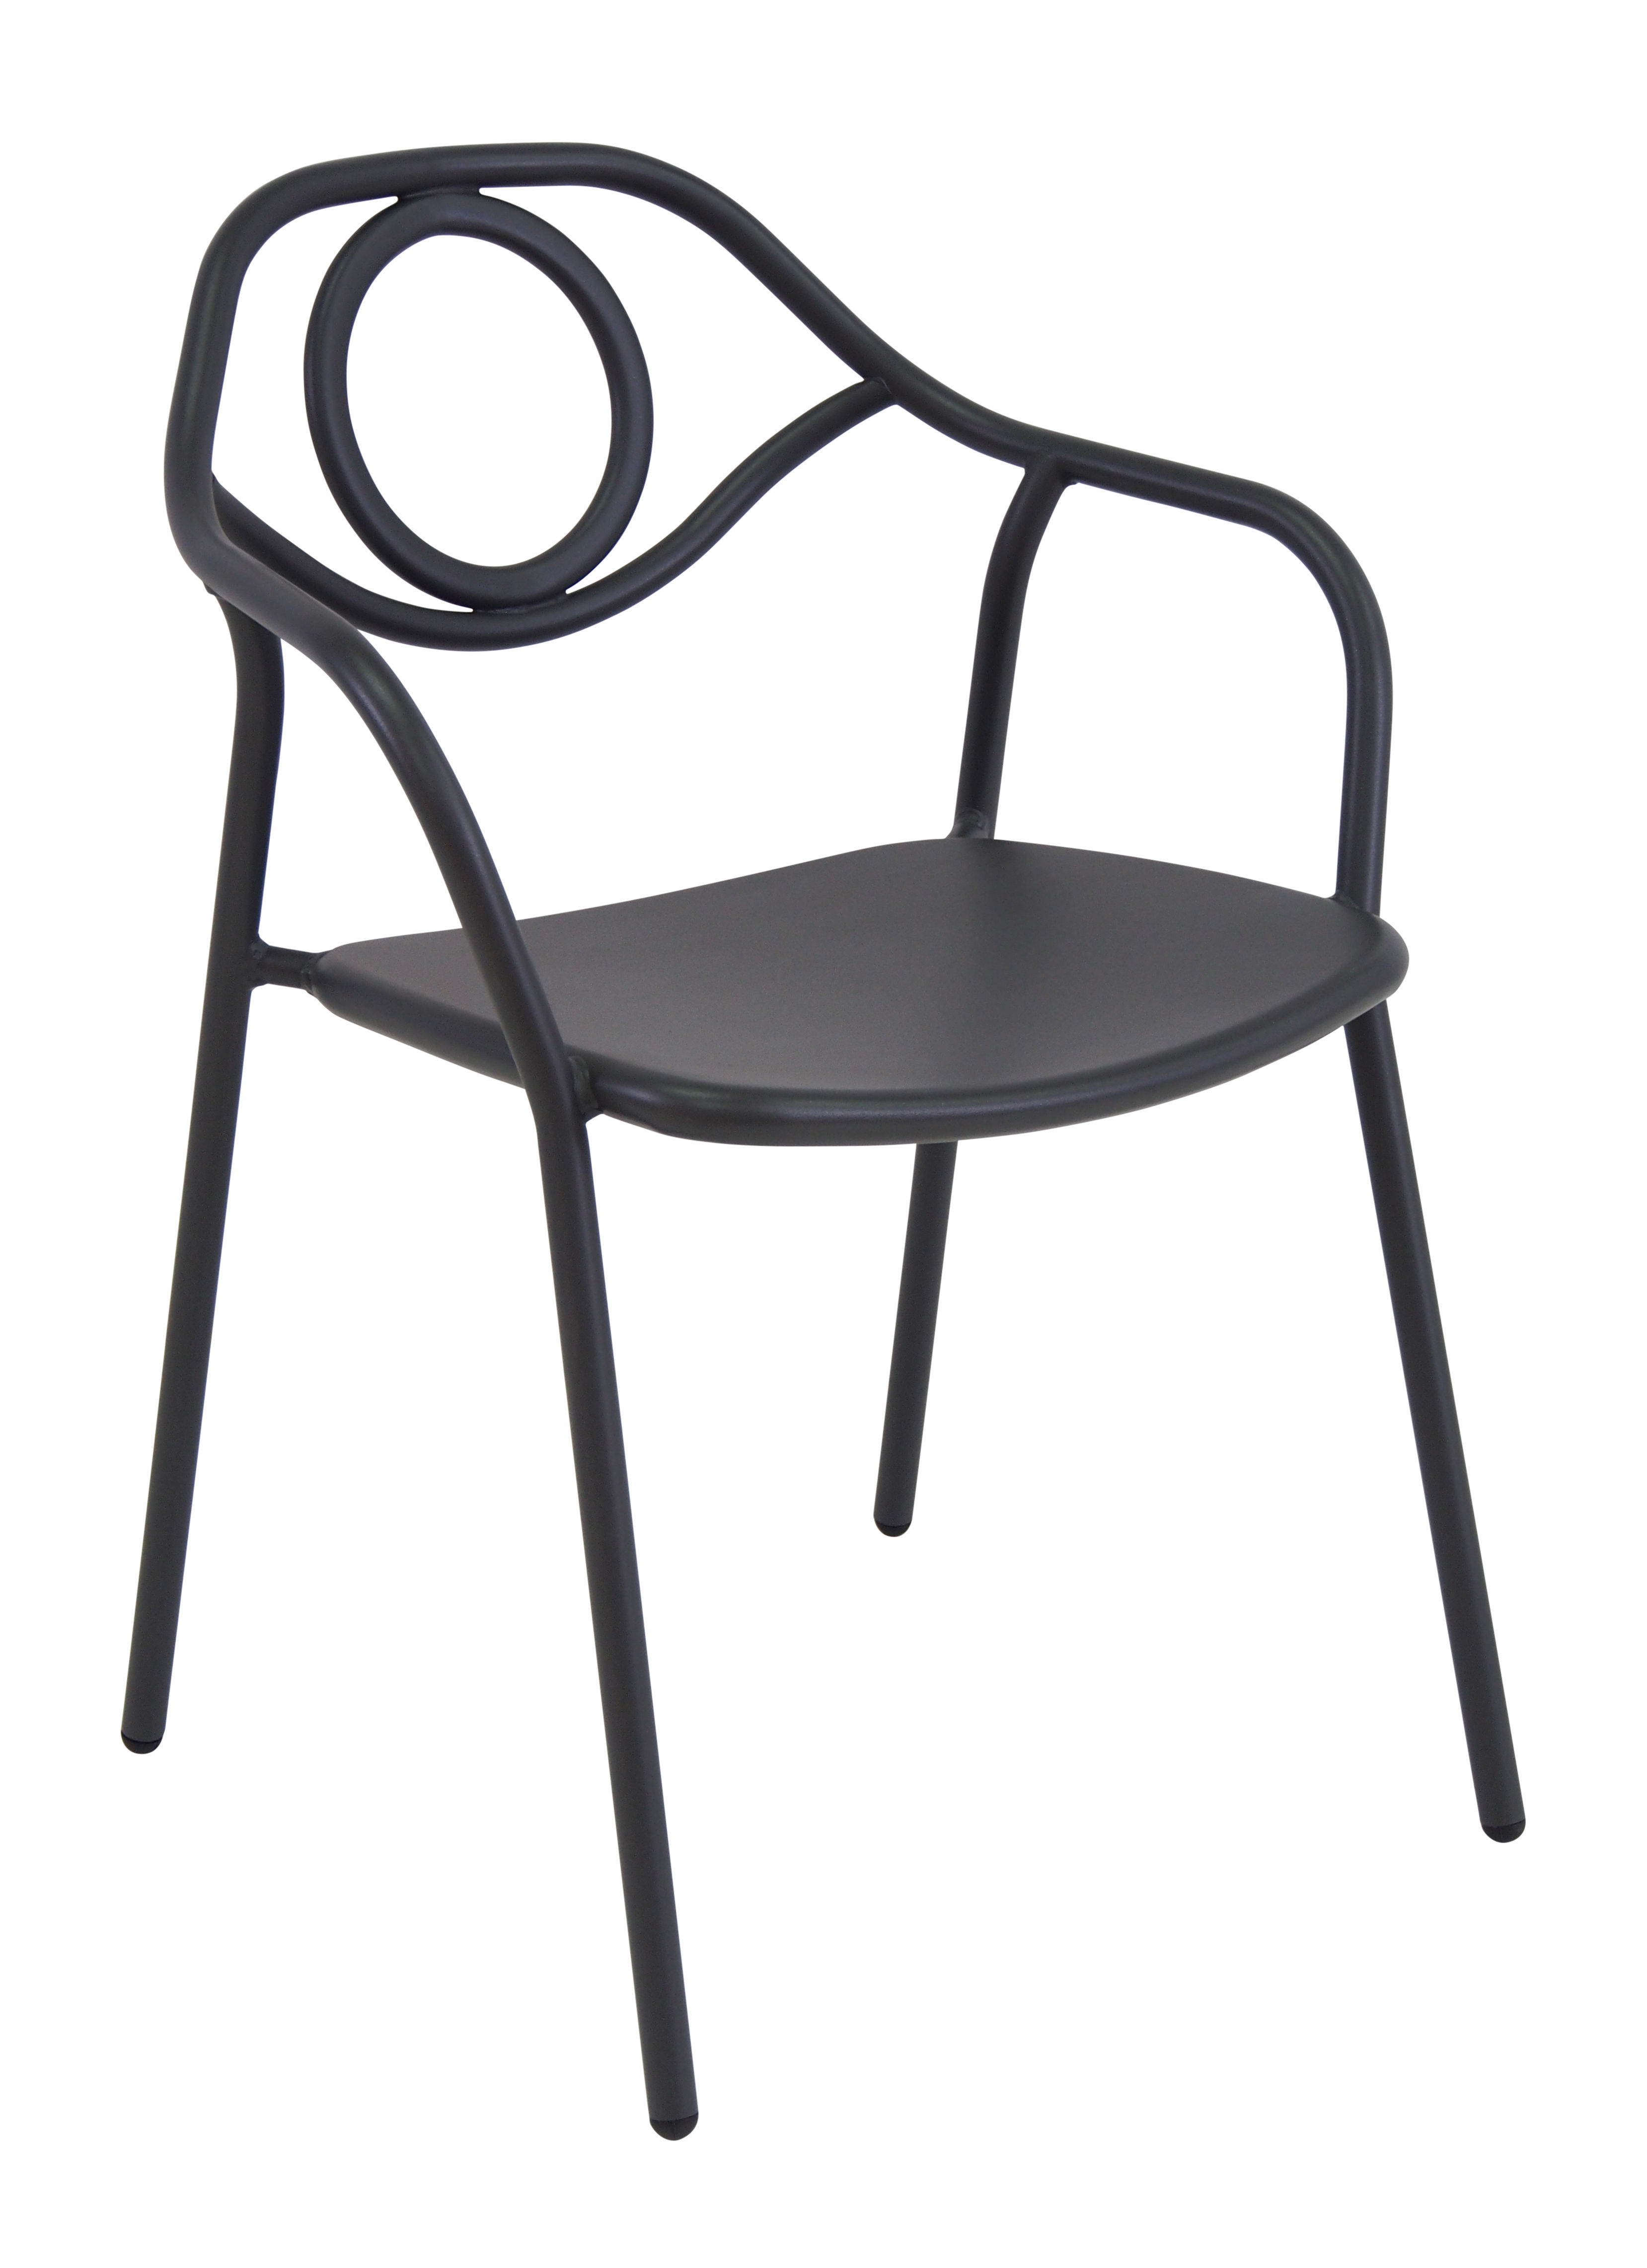 Furniture - Chairs - Zahir Stackable armchair - / Metal by Emu - Old iron - Varnished steel